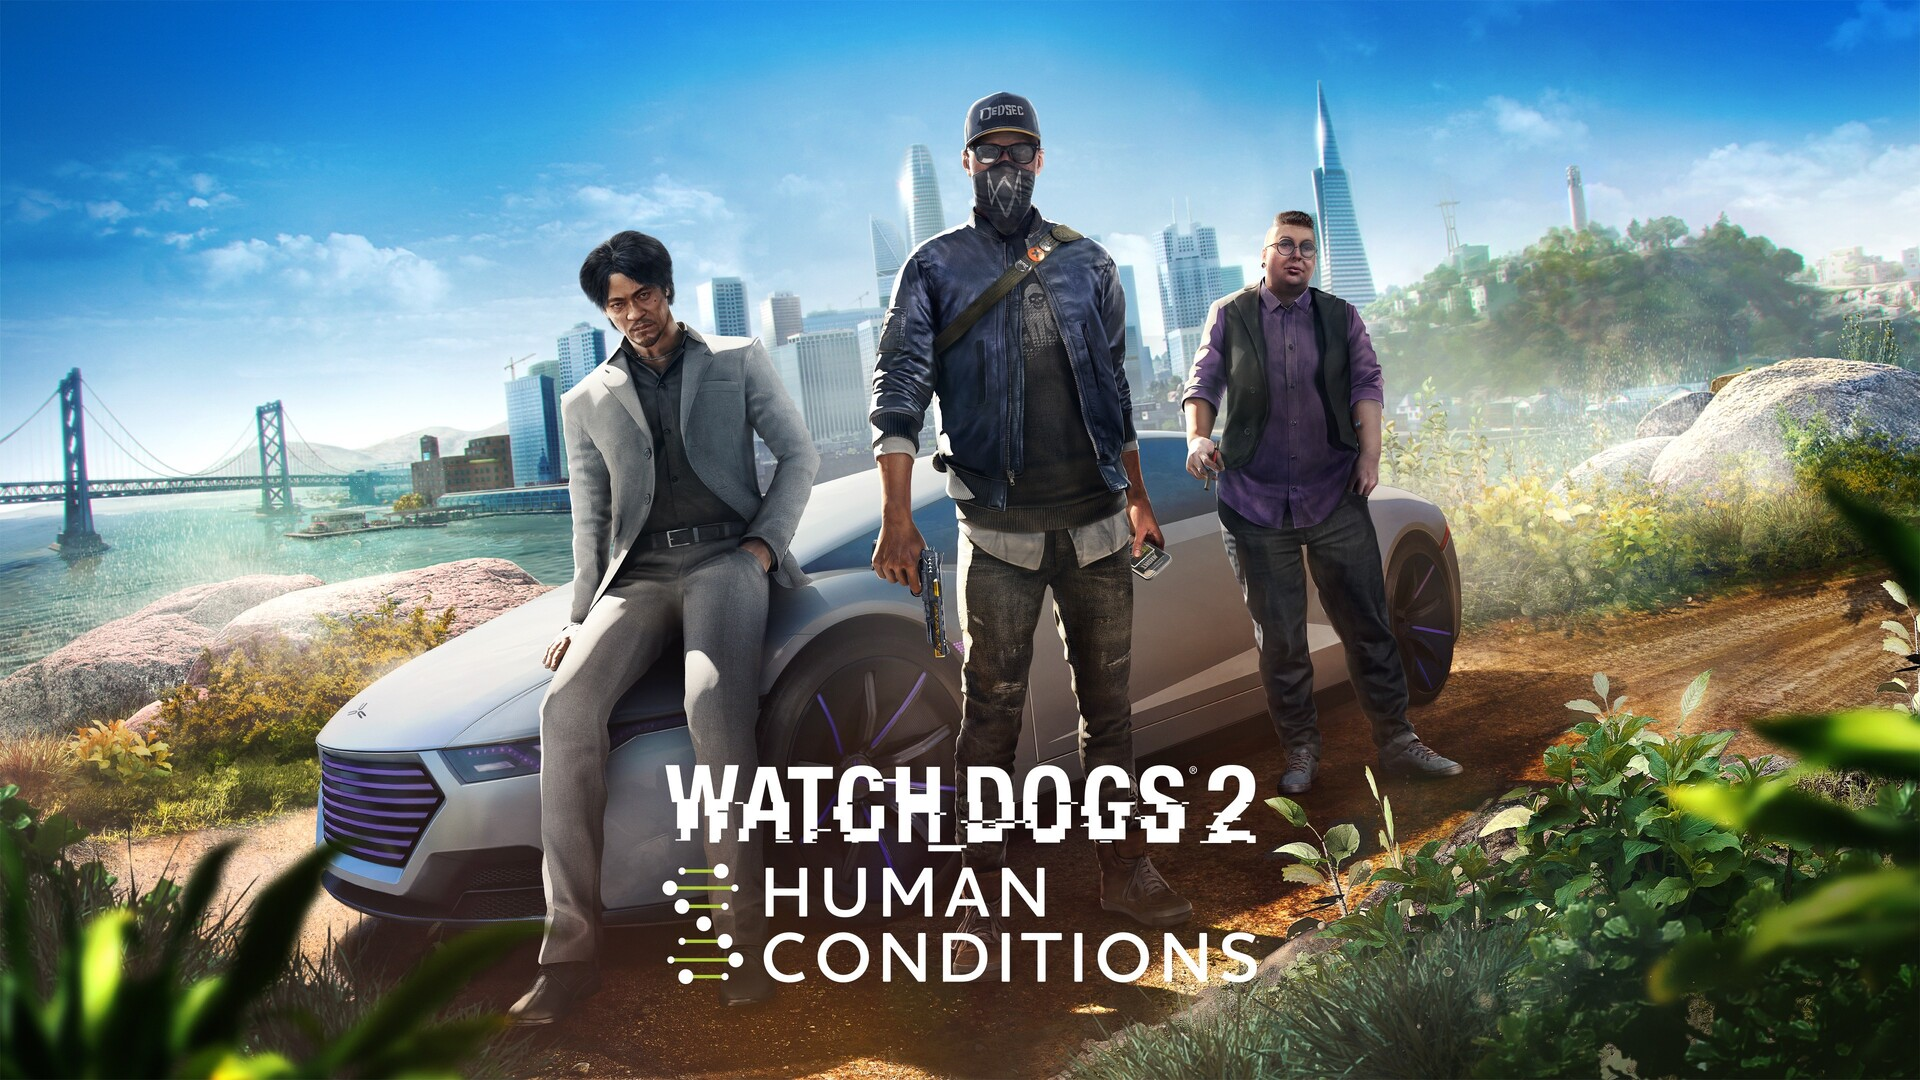 1920x1080 Watch Dogs 2 Human Conditions Laptop Full Hd 1080p Hd 4k